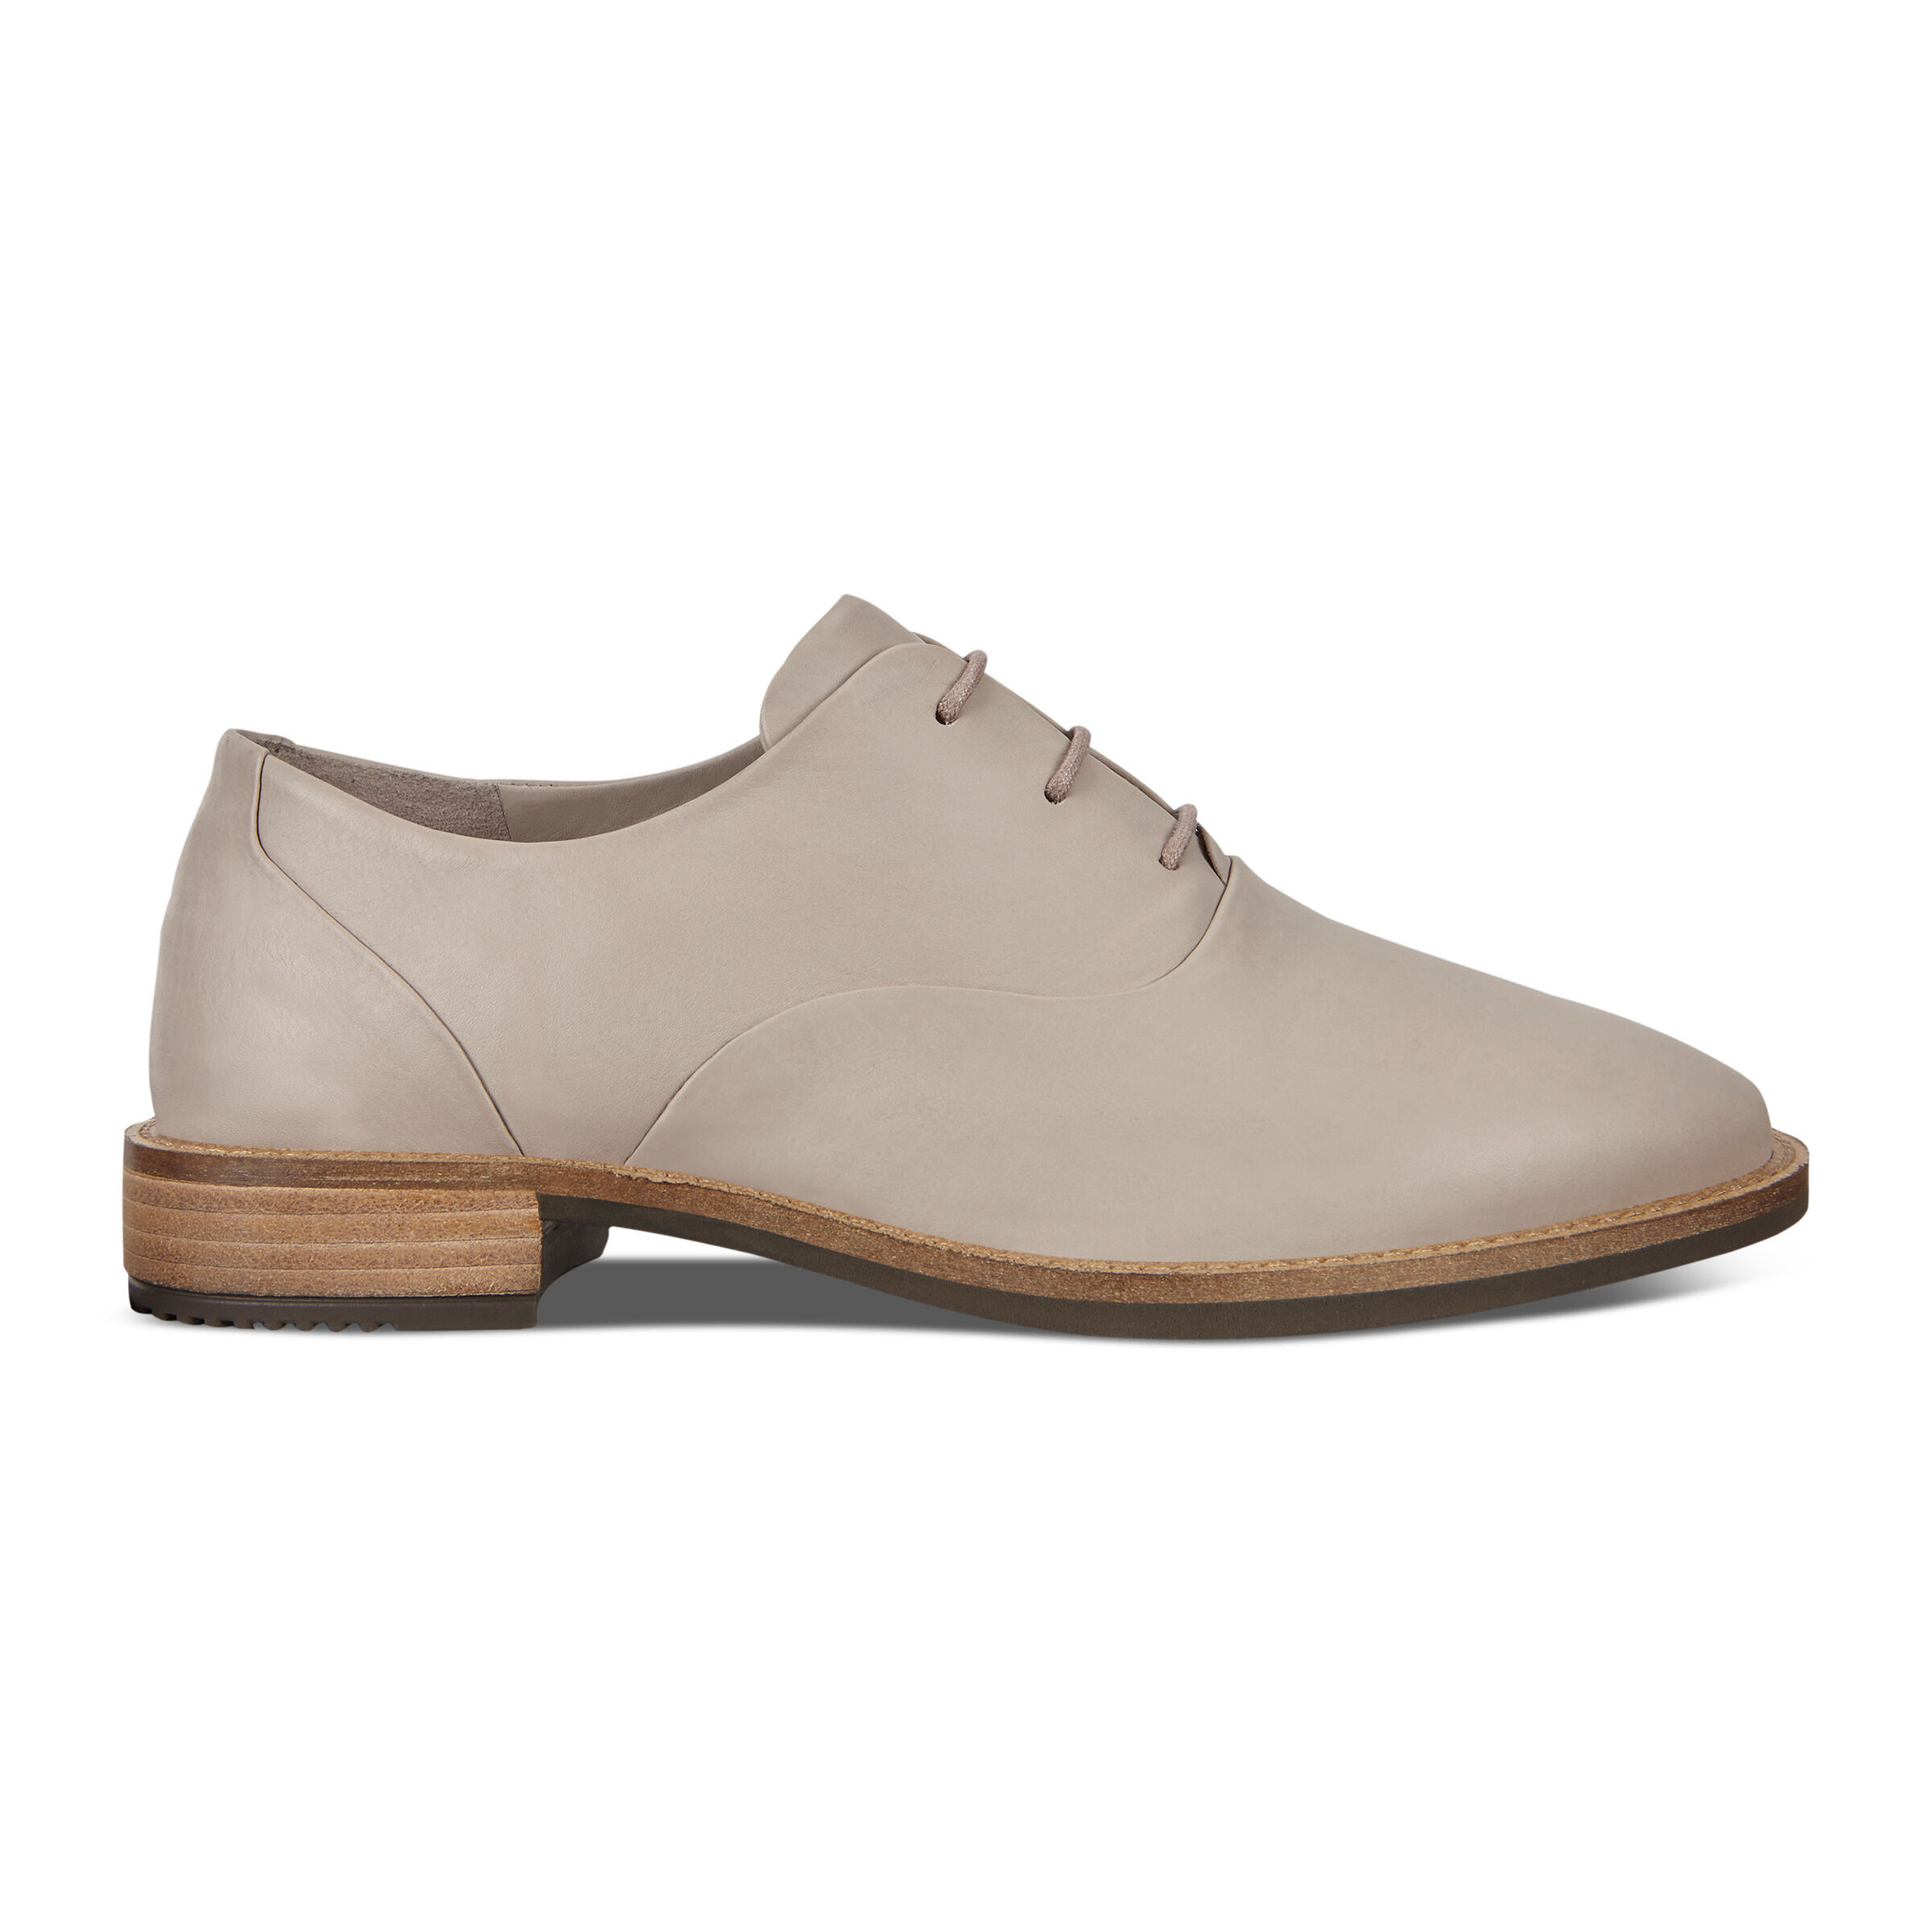 ECCO Sartorelle 25 Tailored Womens Dress Shoes